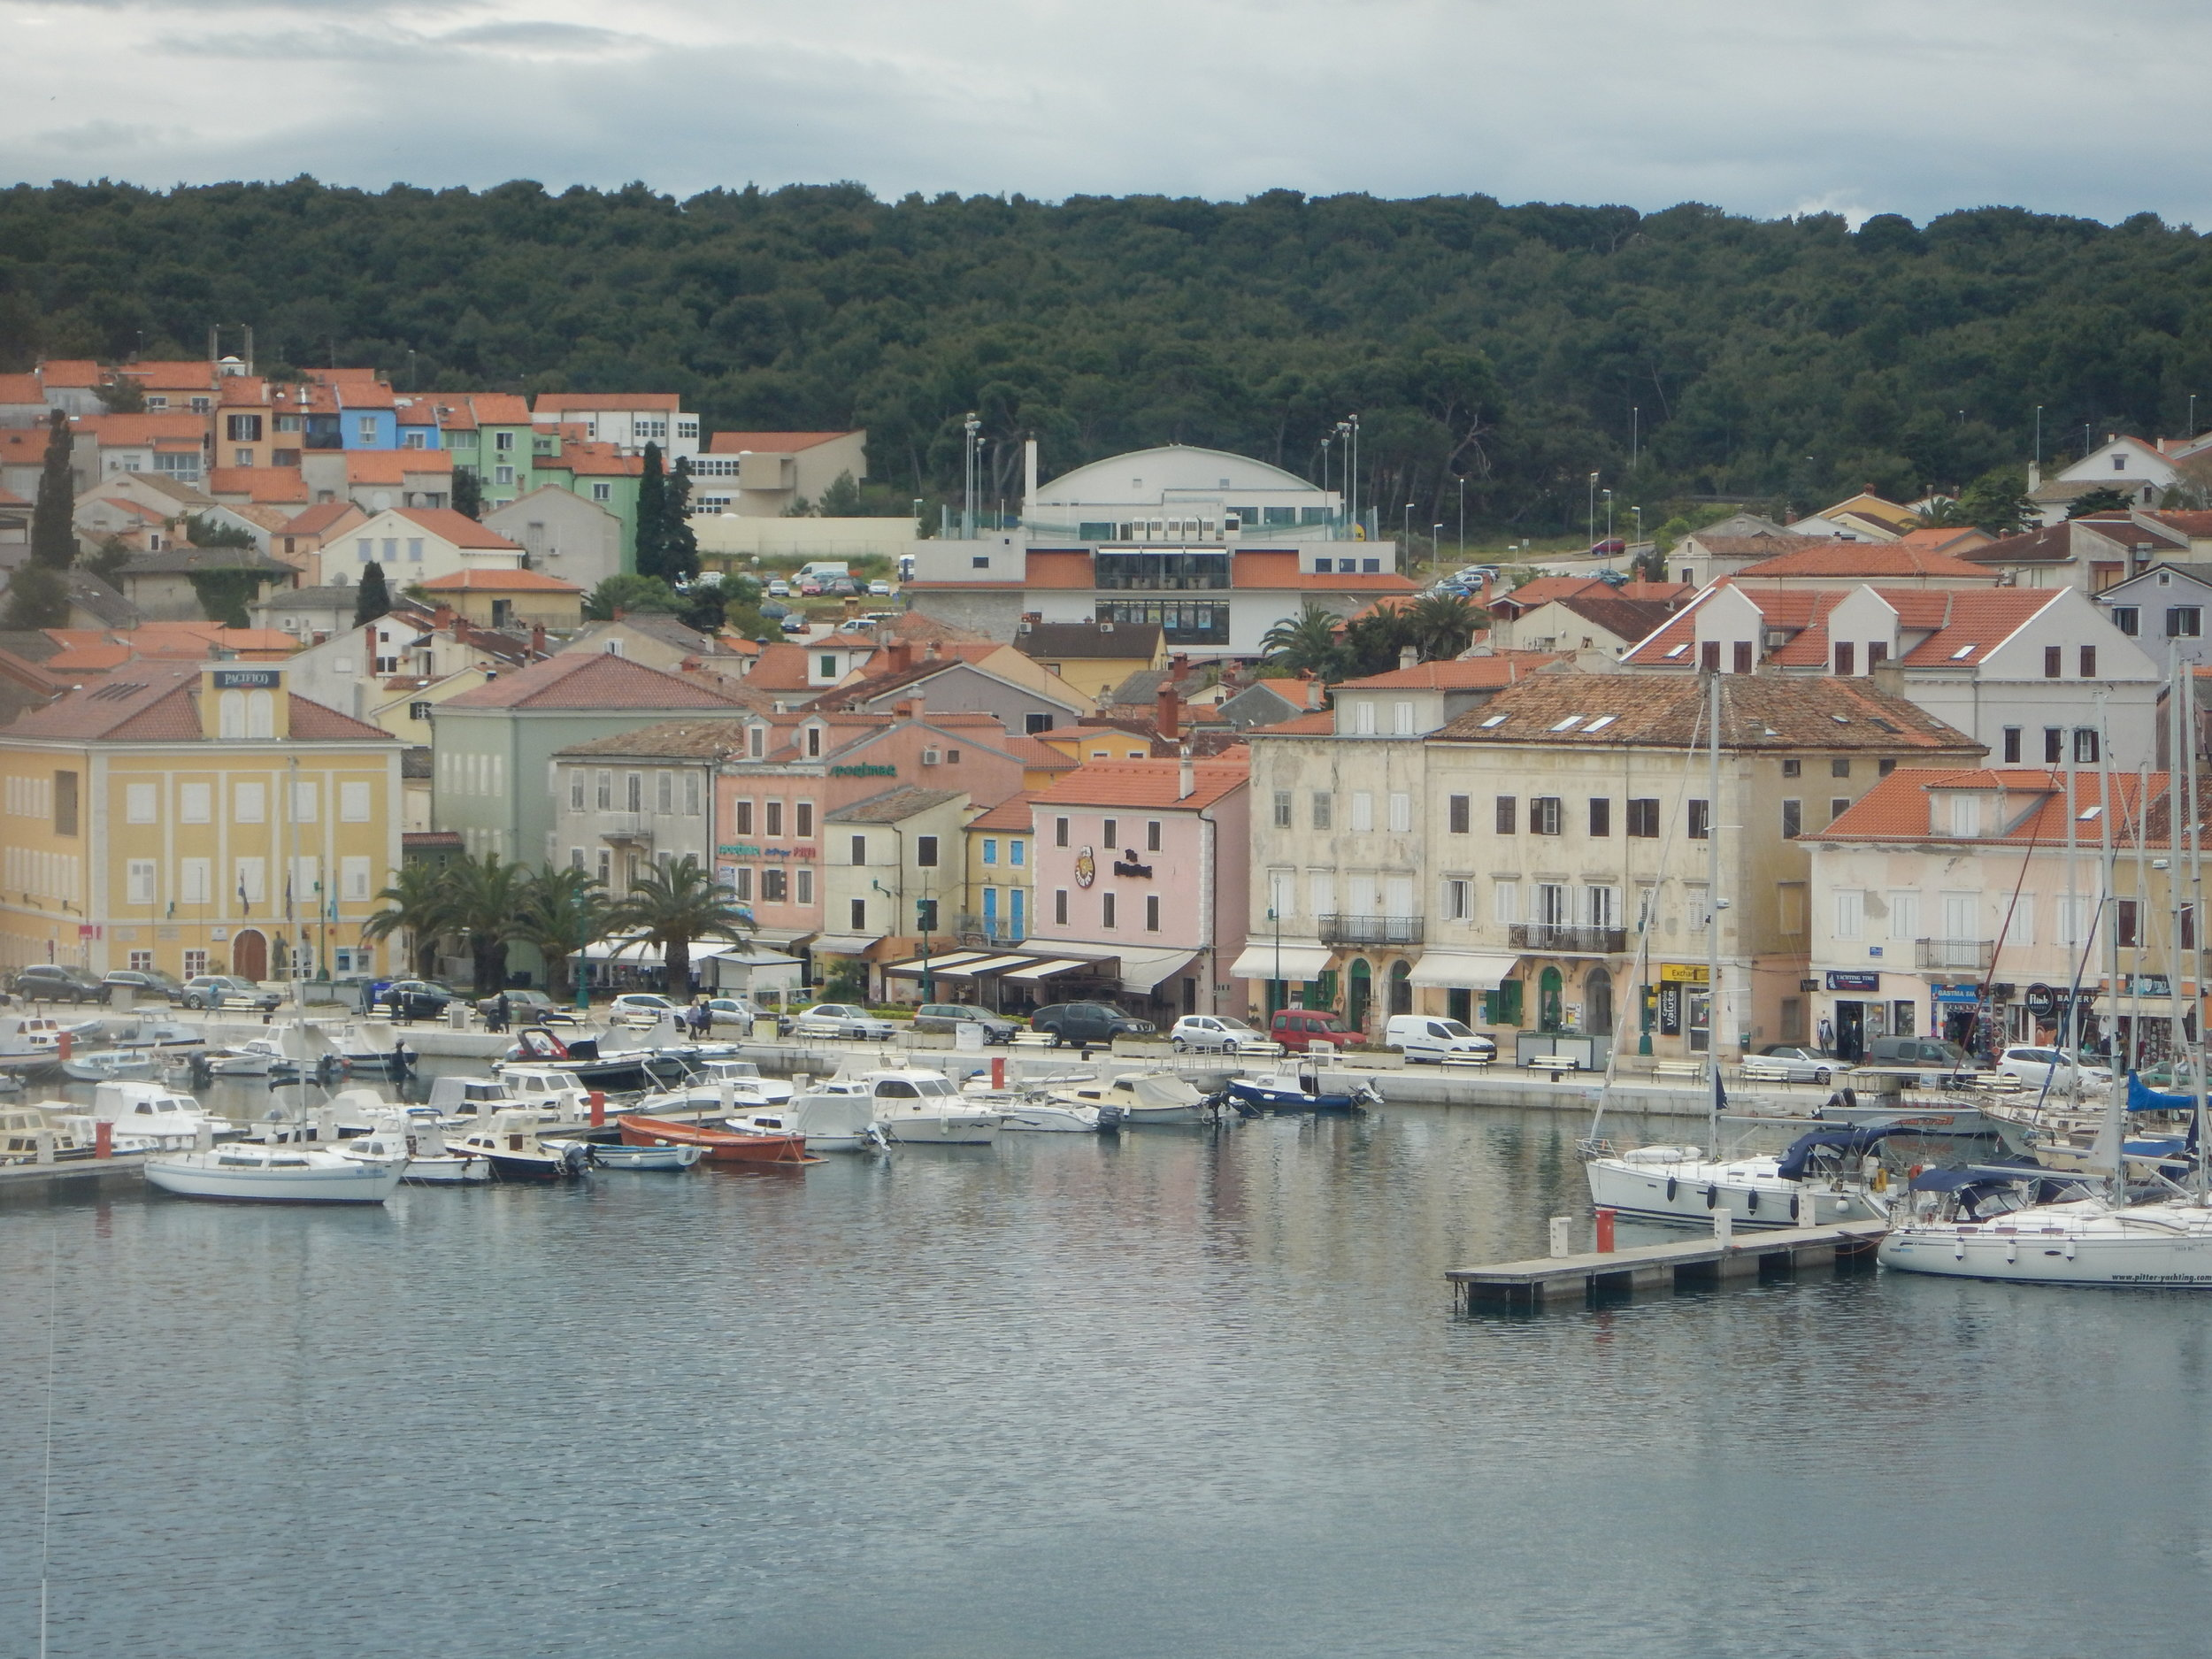 Mali Losinj town on island Mali Losinj. Very sheltered Harbour and was once a busy sailing ship building port..